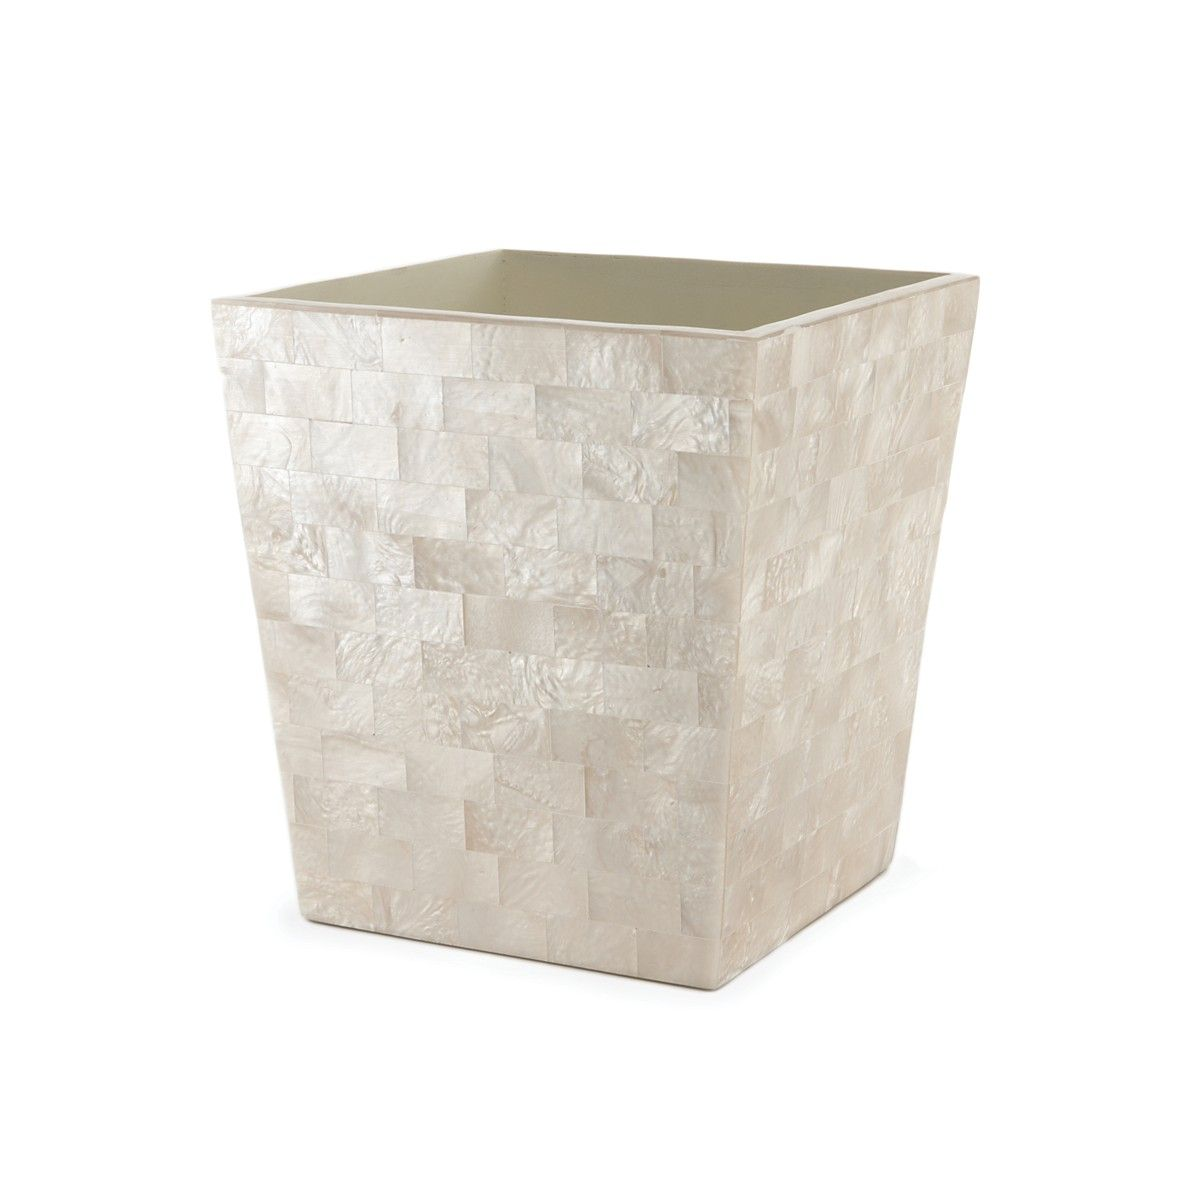 Mother Of Pearl Wastebasket For Bathroom